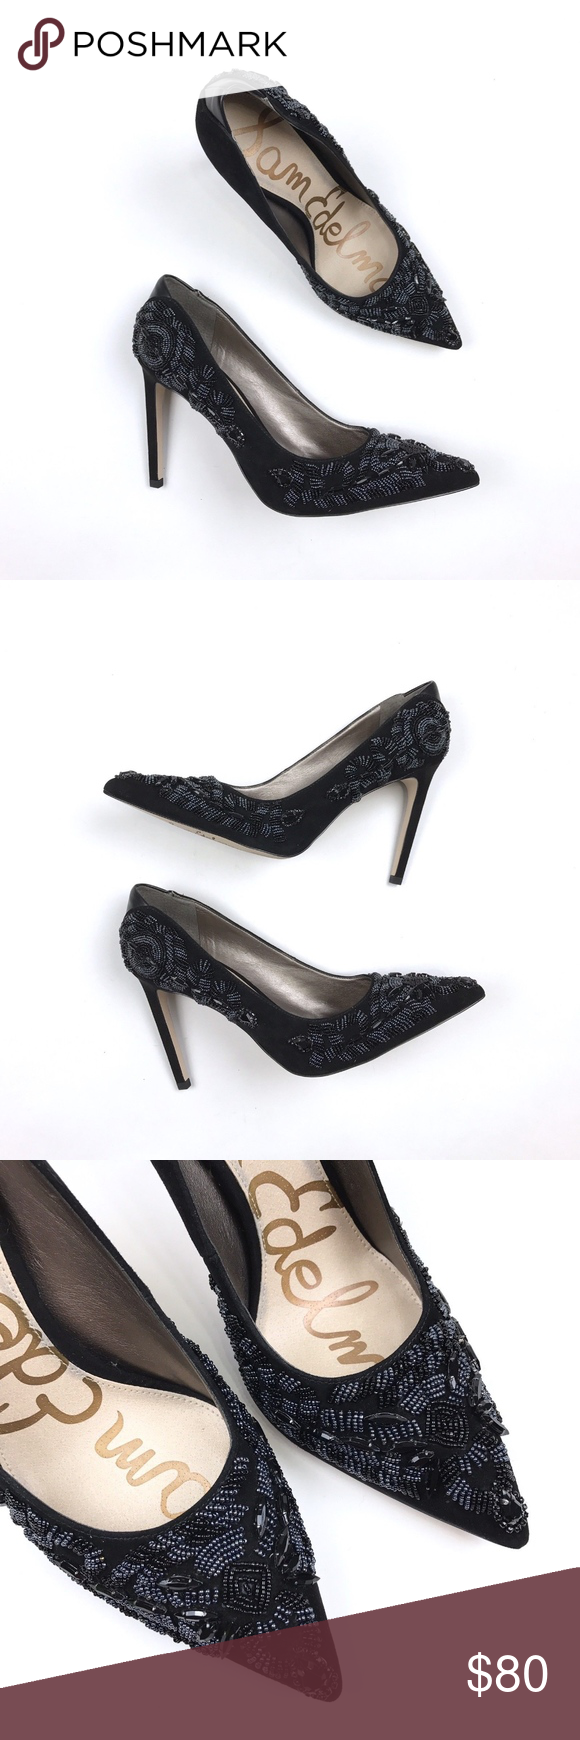 627e635ff99900 Sam Edelman Dani Black Beaded Pointed Pump New in box Shows minor signs of  wear from in store handling on display and in box. One stone missing at  very tip ...